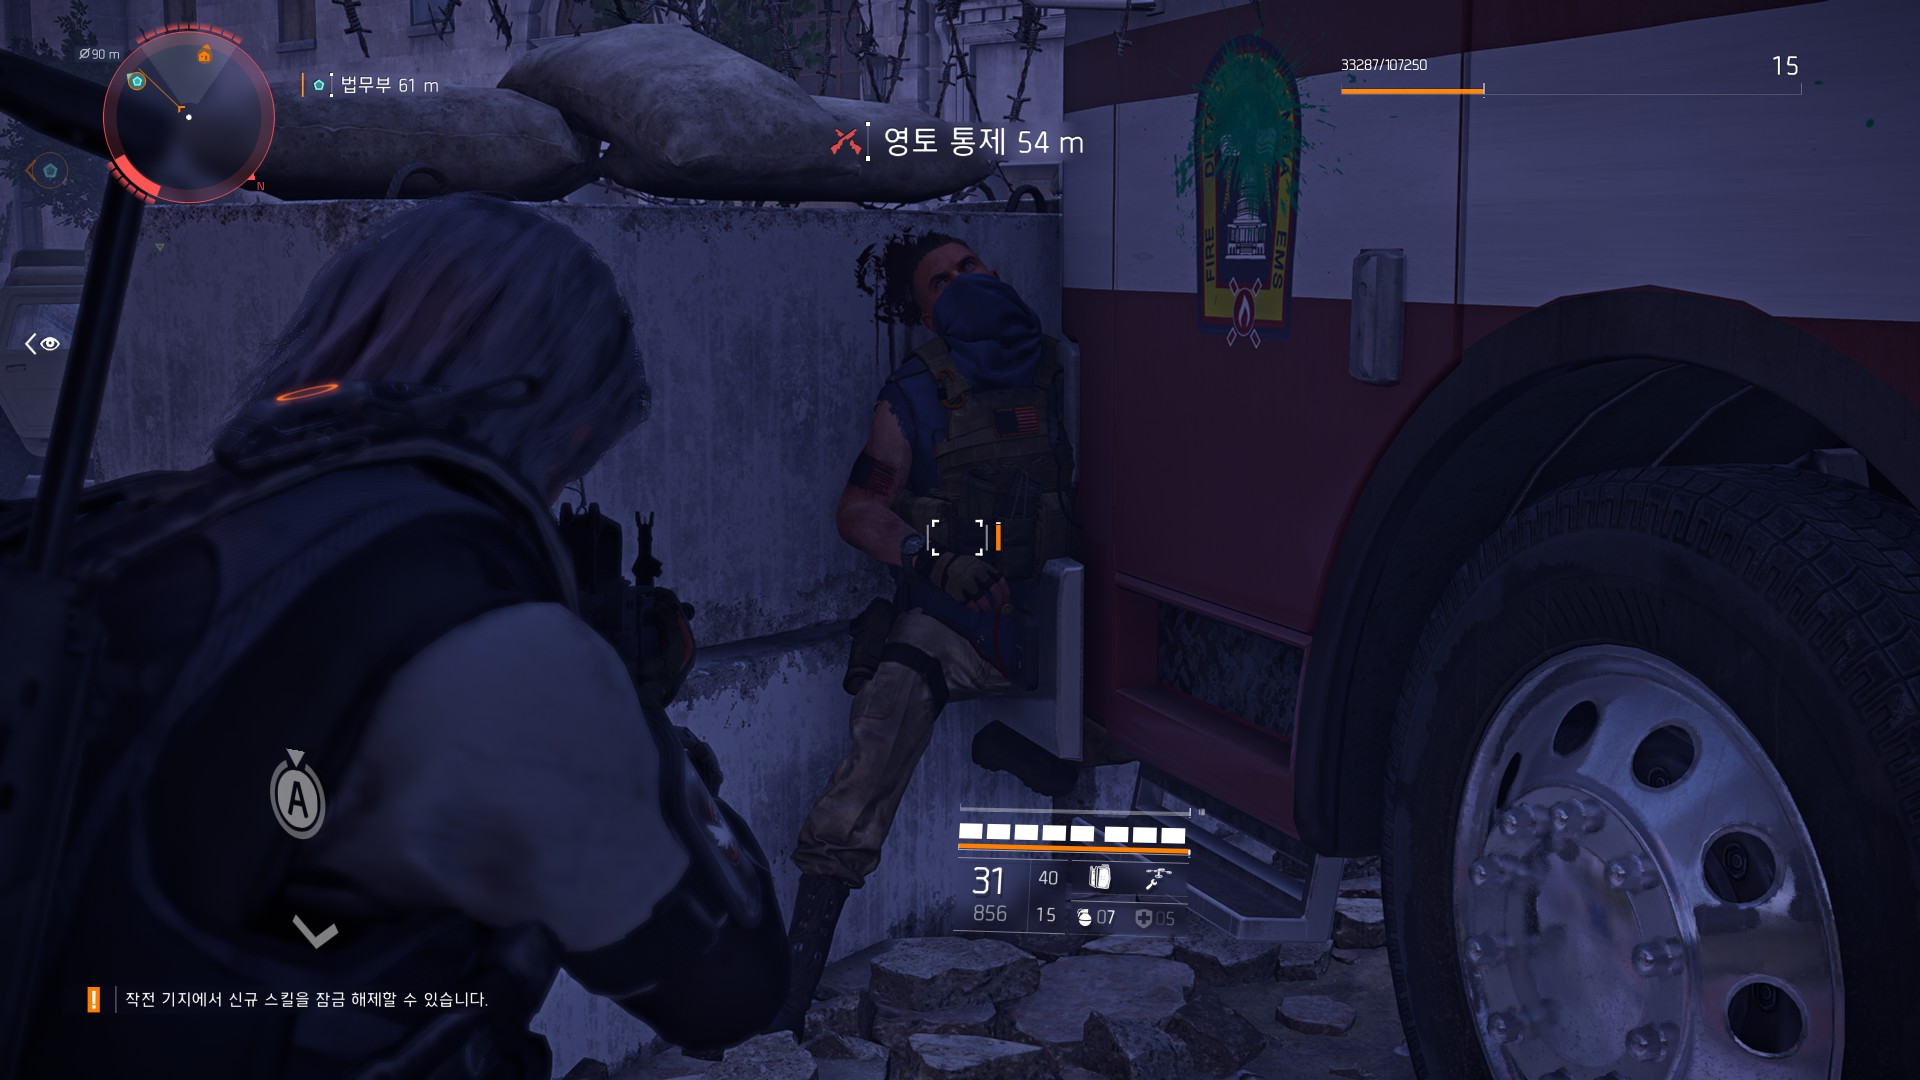 Tom Clancy's The Division® 22019-3-29-21-13-6.jpg